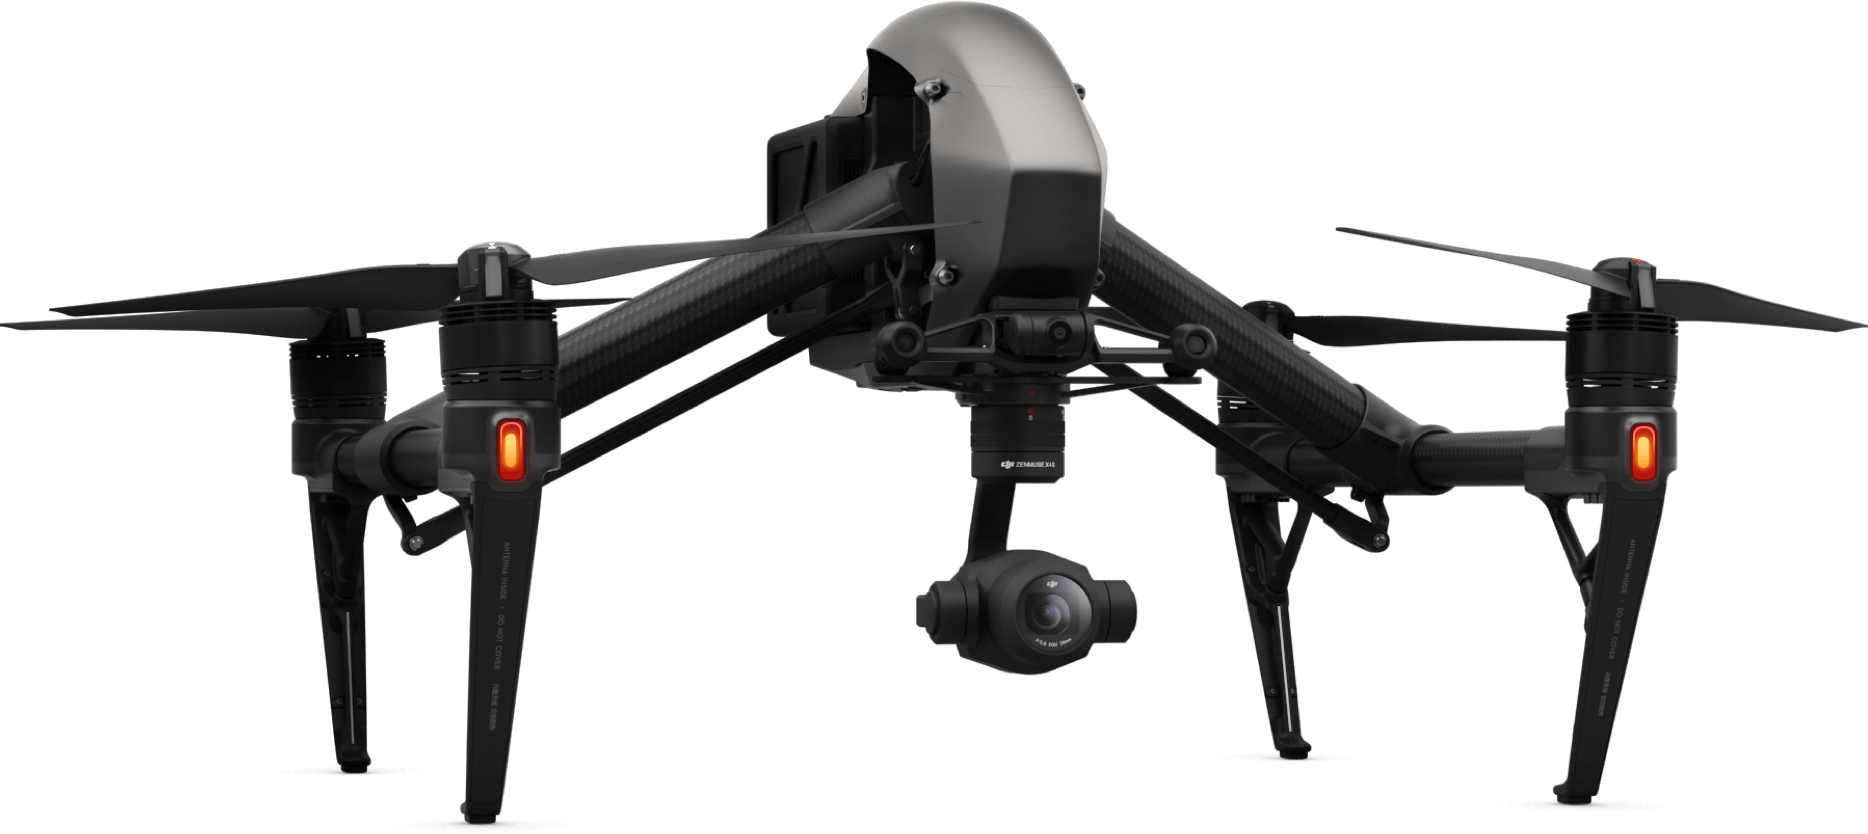 Zenmuse X4s 1 Inch Aerial Camera Dji Inspire 2 The Is A Powerful Featuring 20 Megapixel Sensor And Maximum Iso Of 12800 Dynamic Range Increased From X3 By